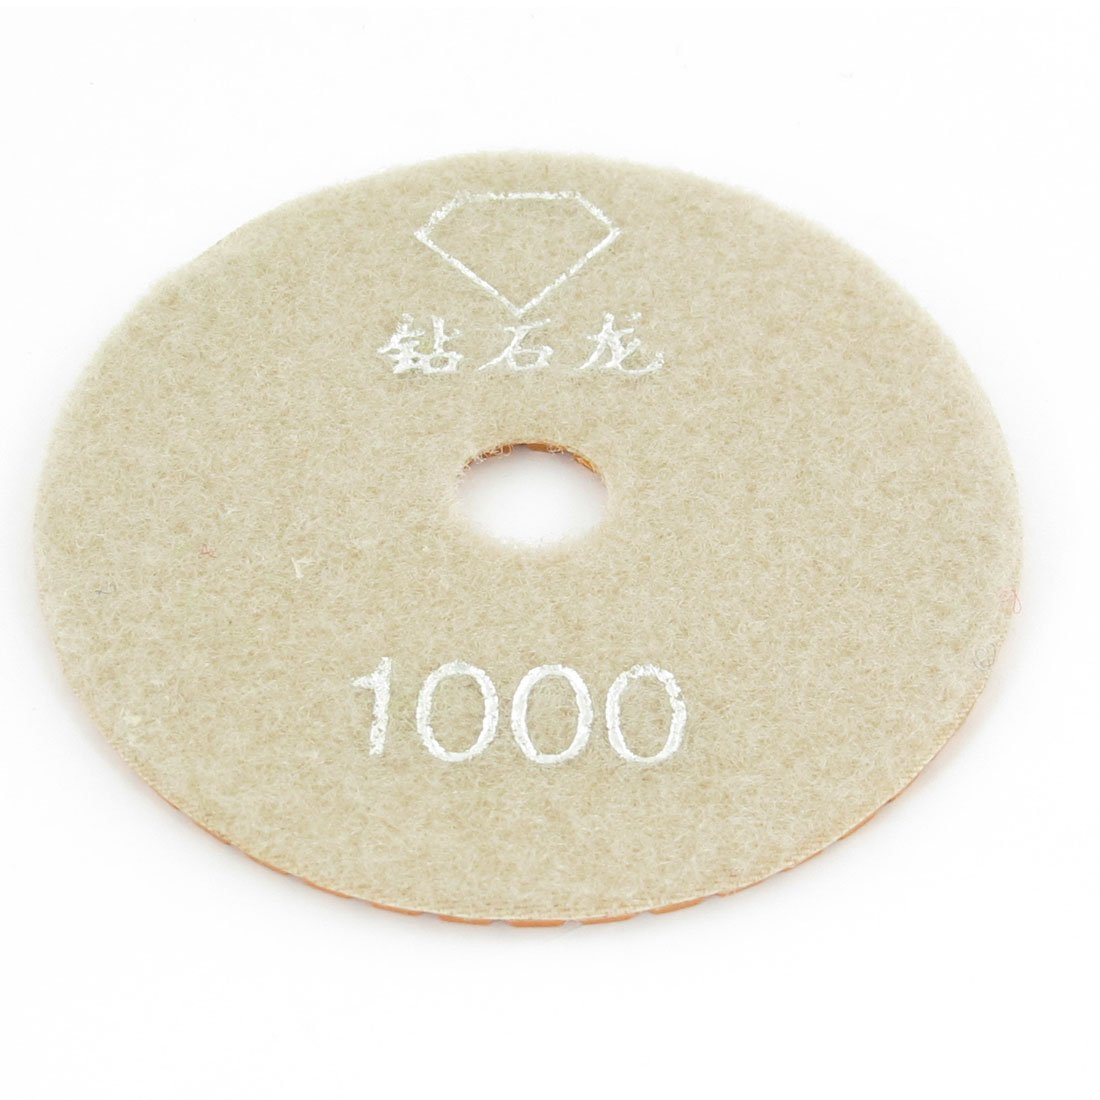 // Uxcell a13090500ux1093 Ltd Uxcell 3.9-Inch Dia Grit 1000 Tile Stone Wet Polisher Diamond Polishing Pad Dragonmarts Co